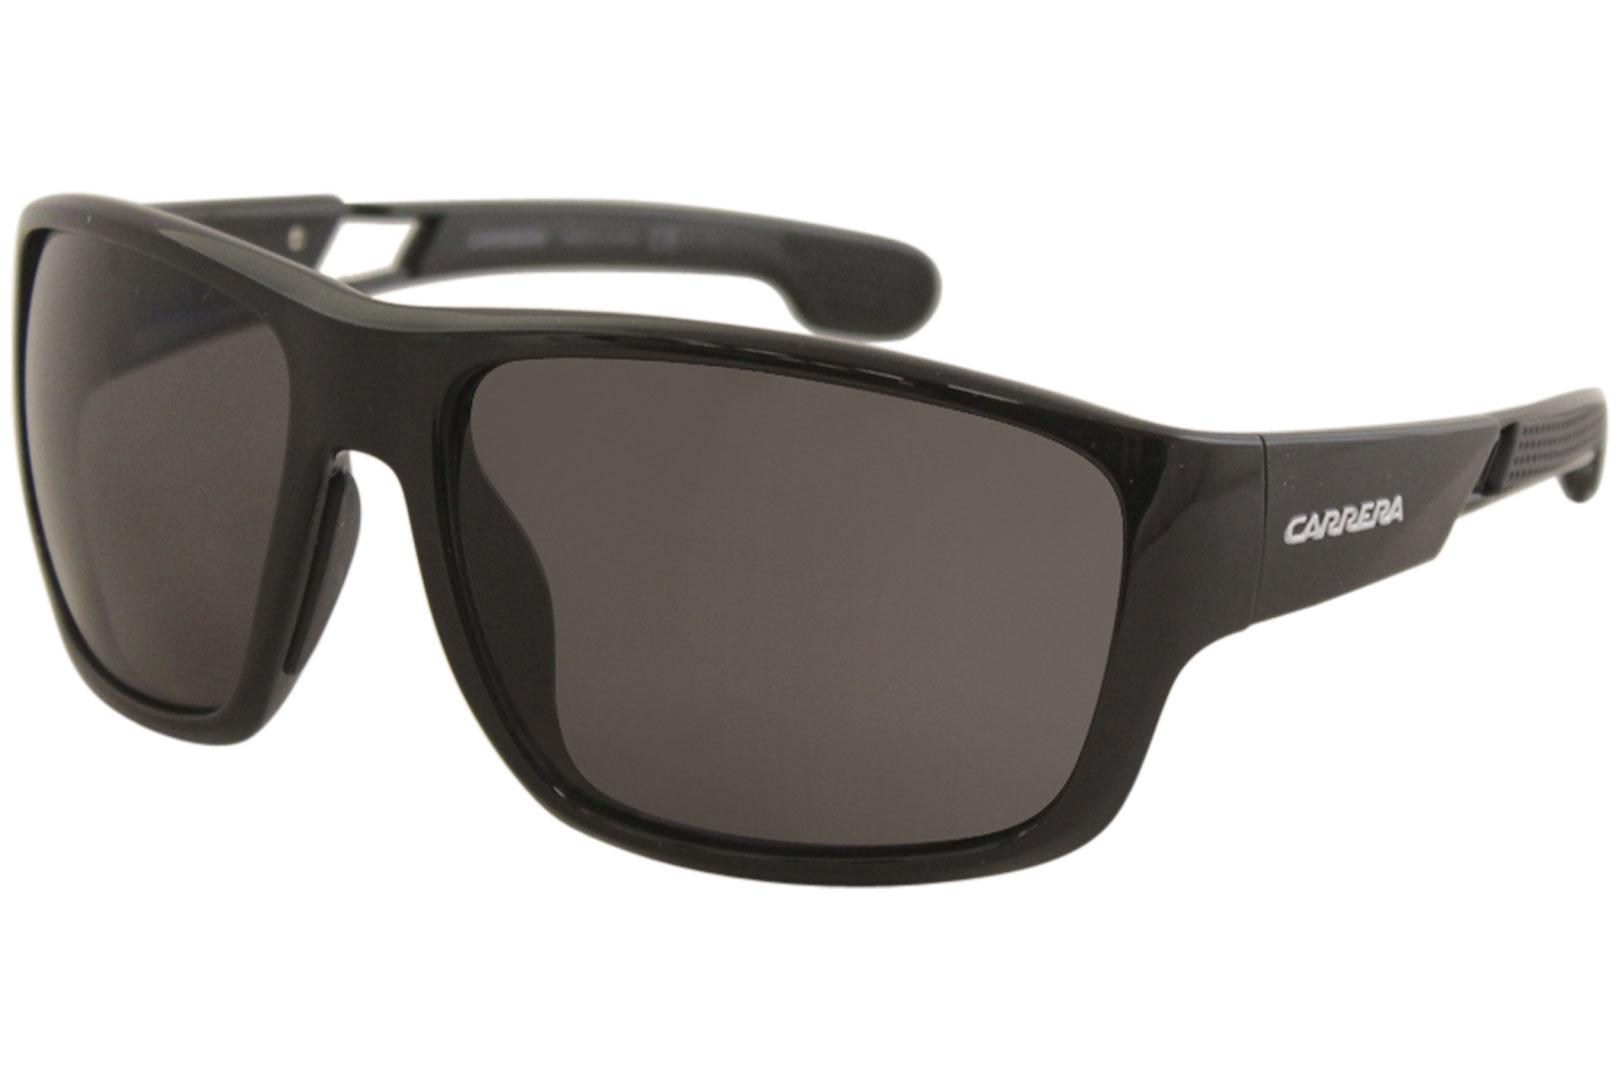 Carrera Men's 4006S 4006/S Fashion Rectangle Sunglasses